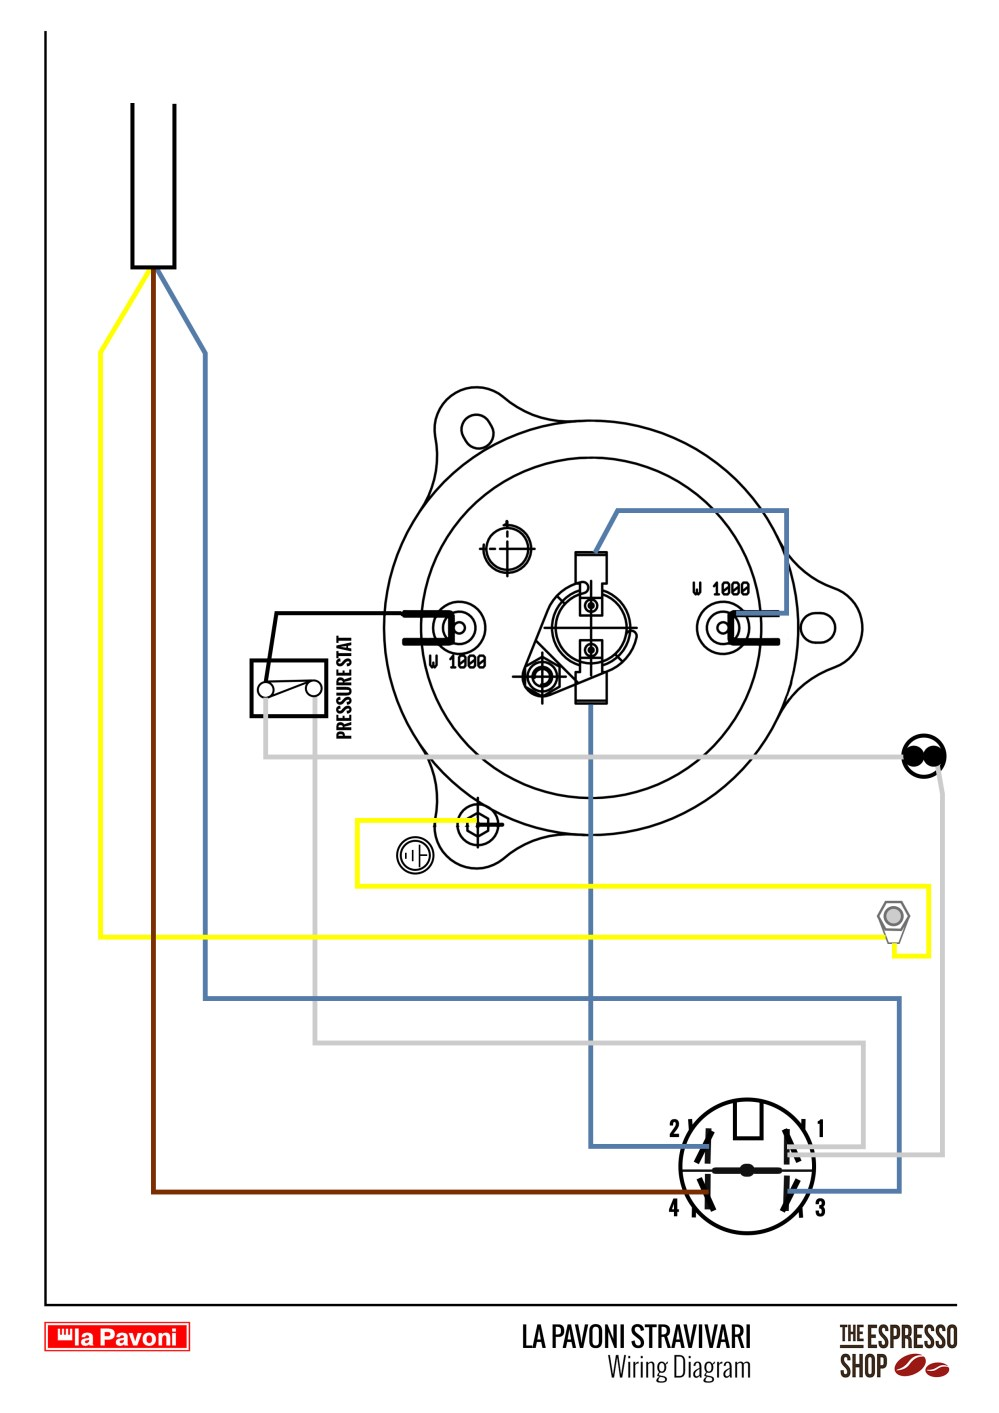 medium resolution of wiring diagramsla pavoni stradivari